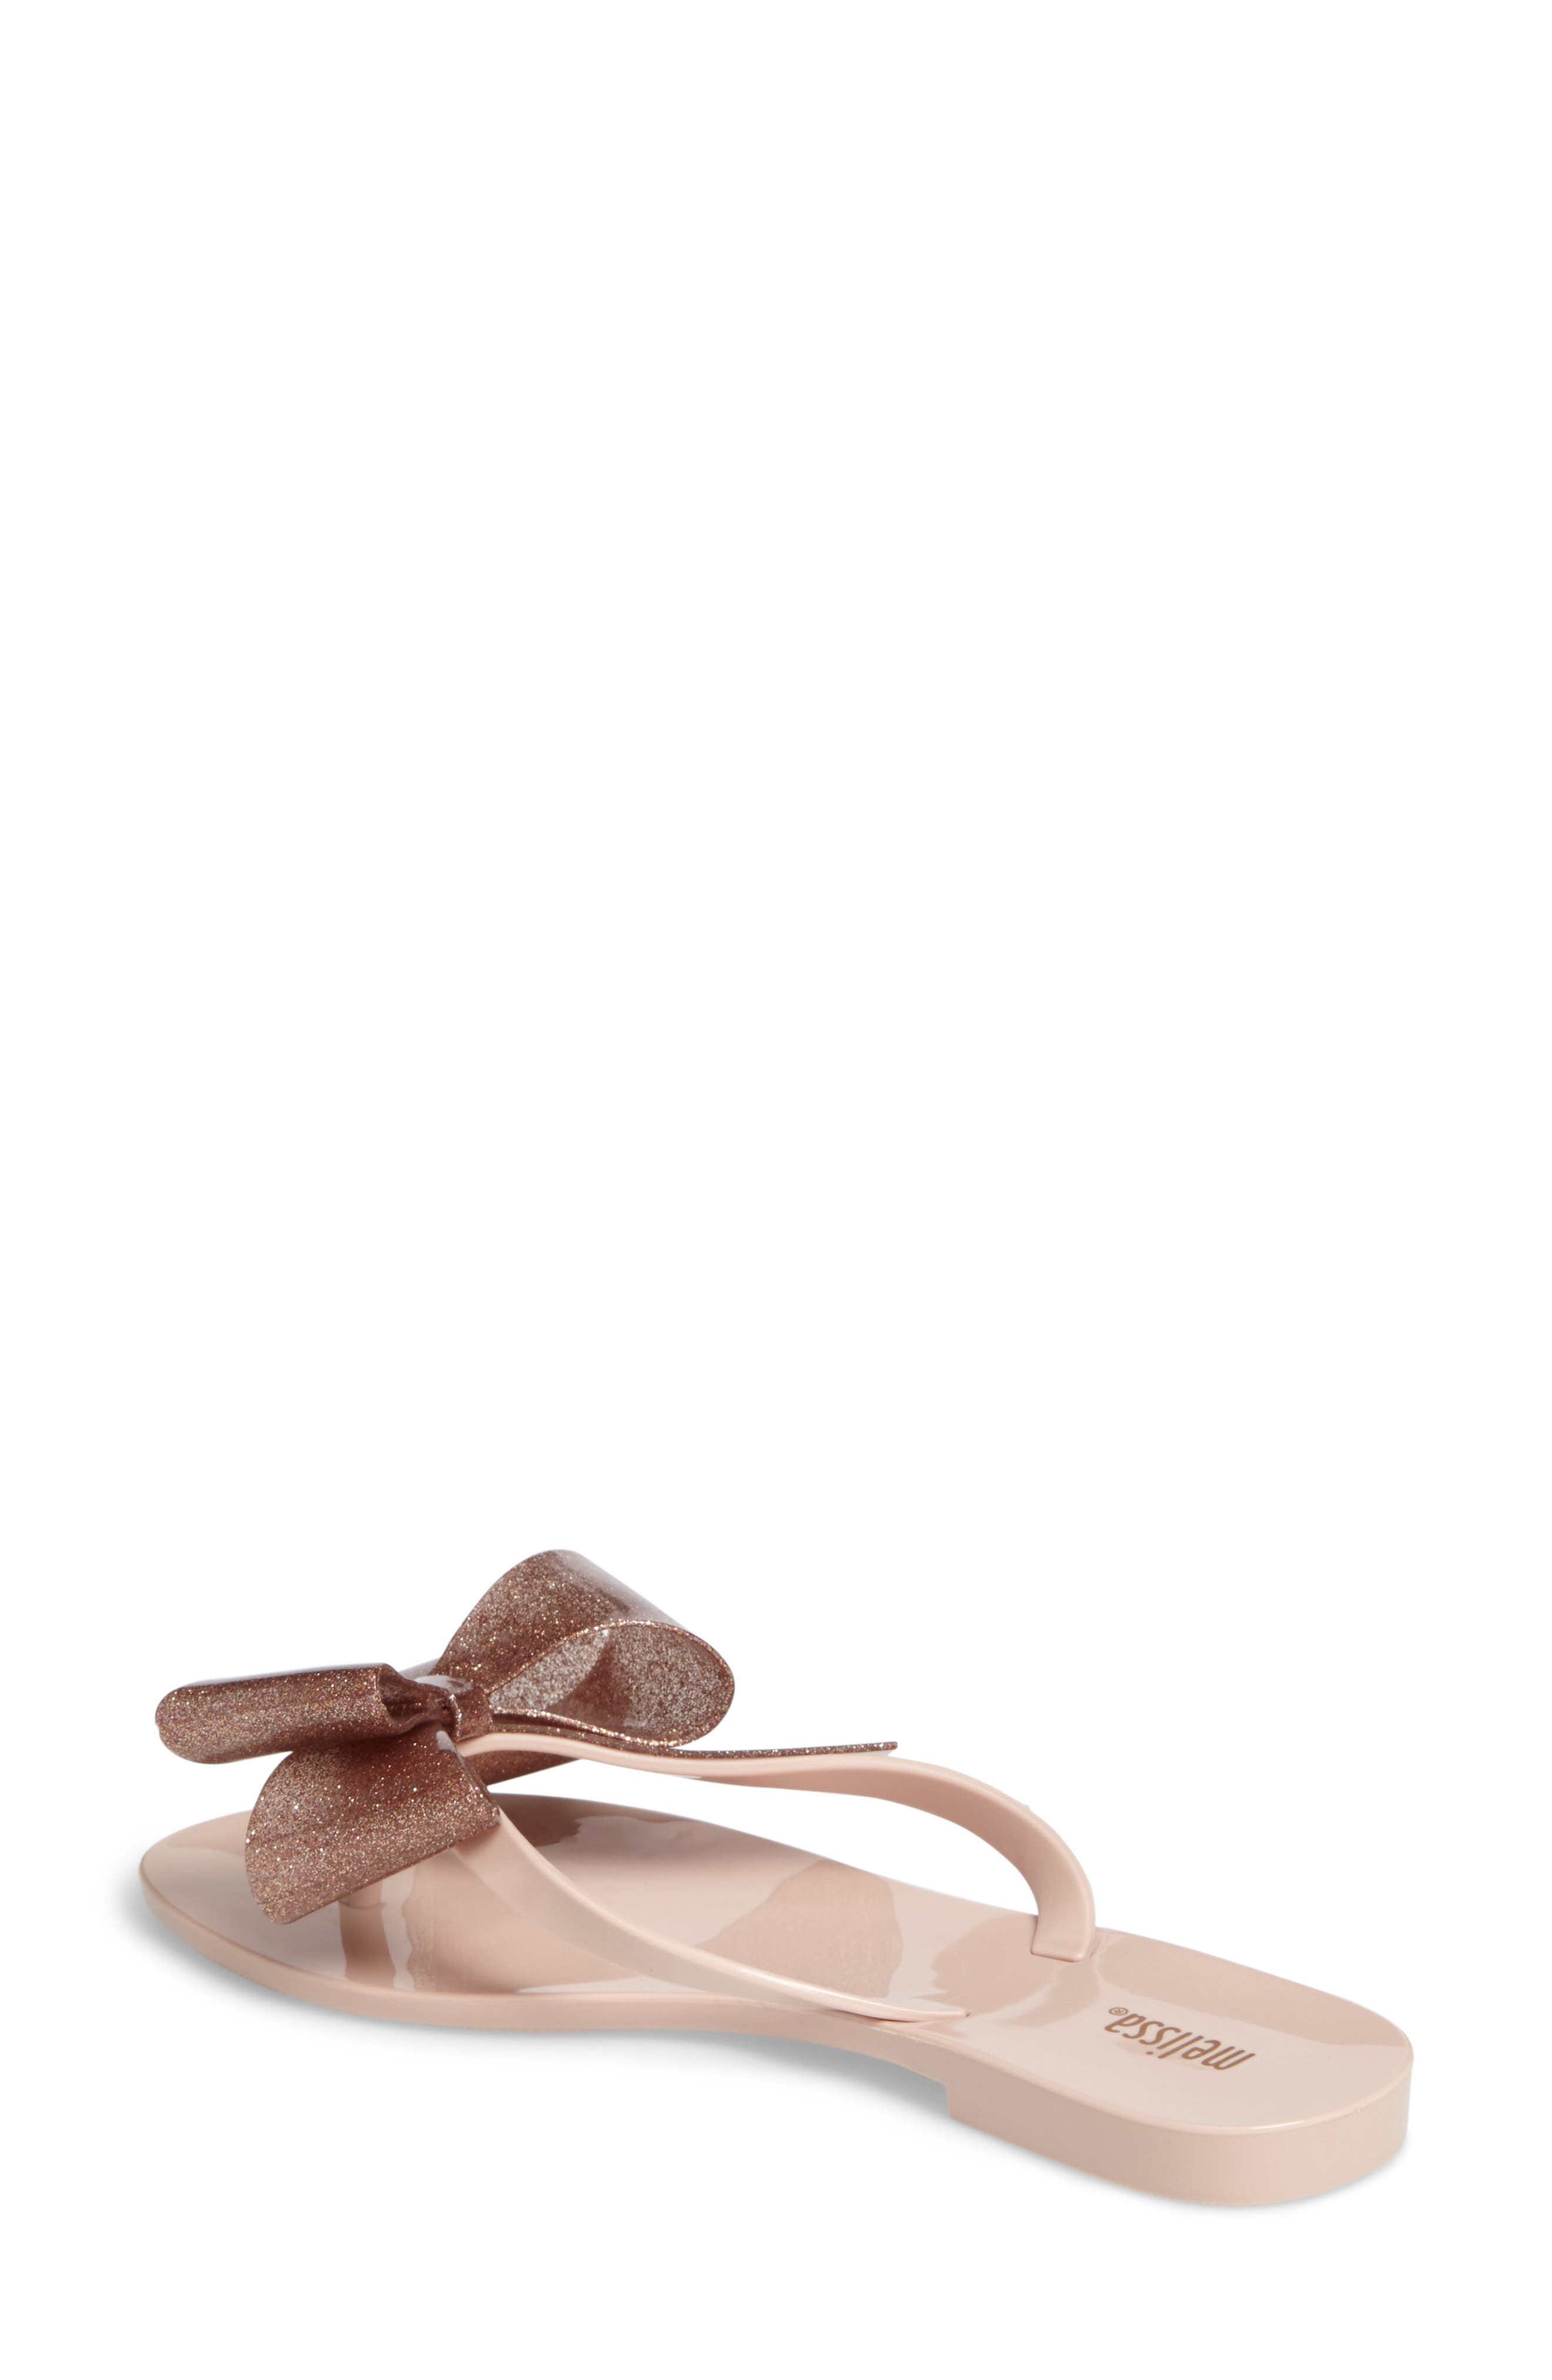 Melissa Shoes For Women Nordstrom Flip Flops And Not The Sandy Beach Kind Design Technology